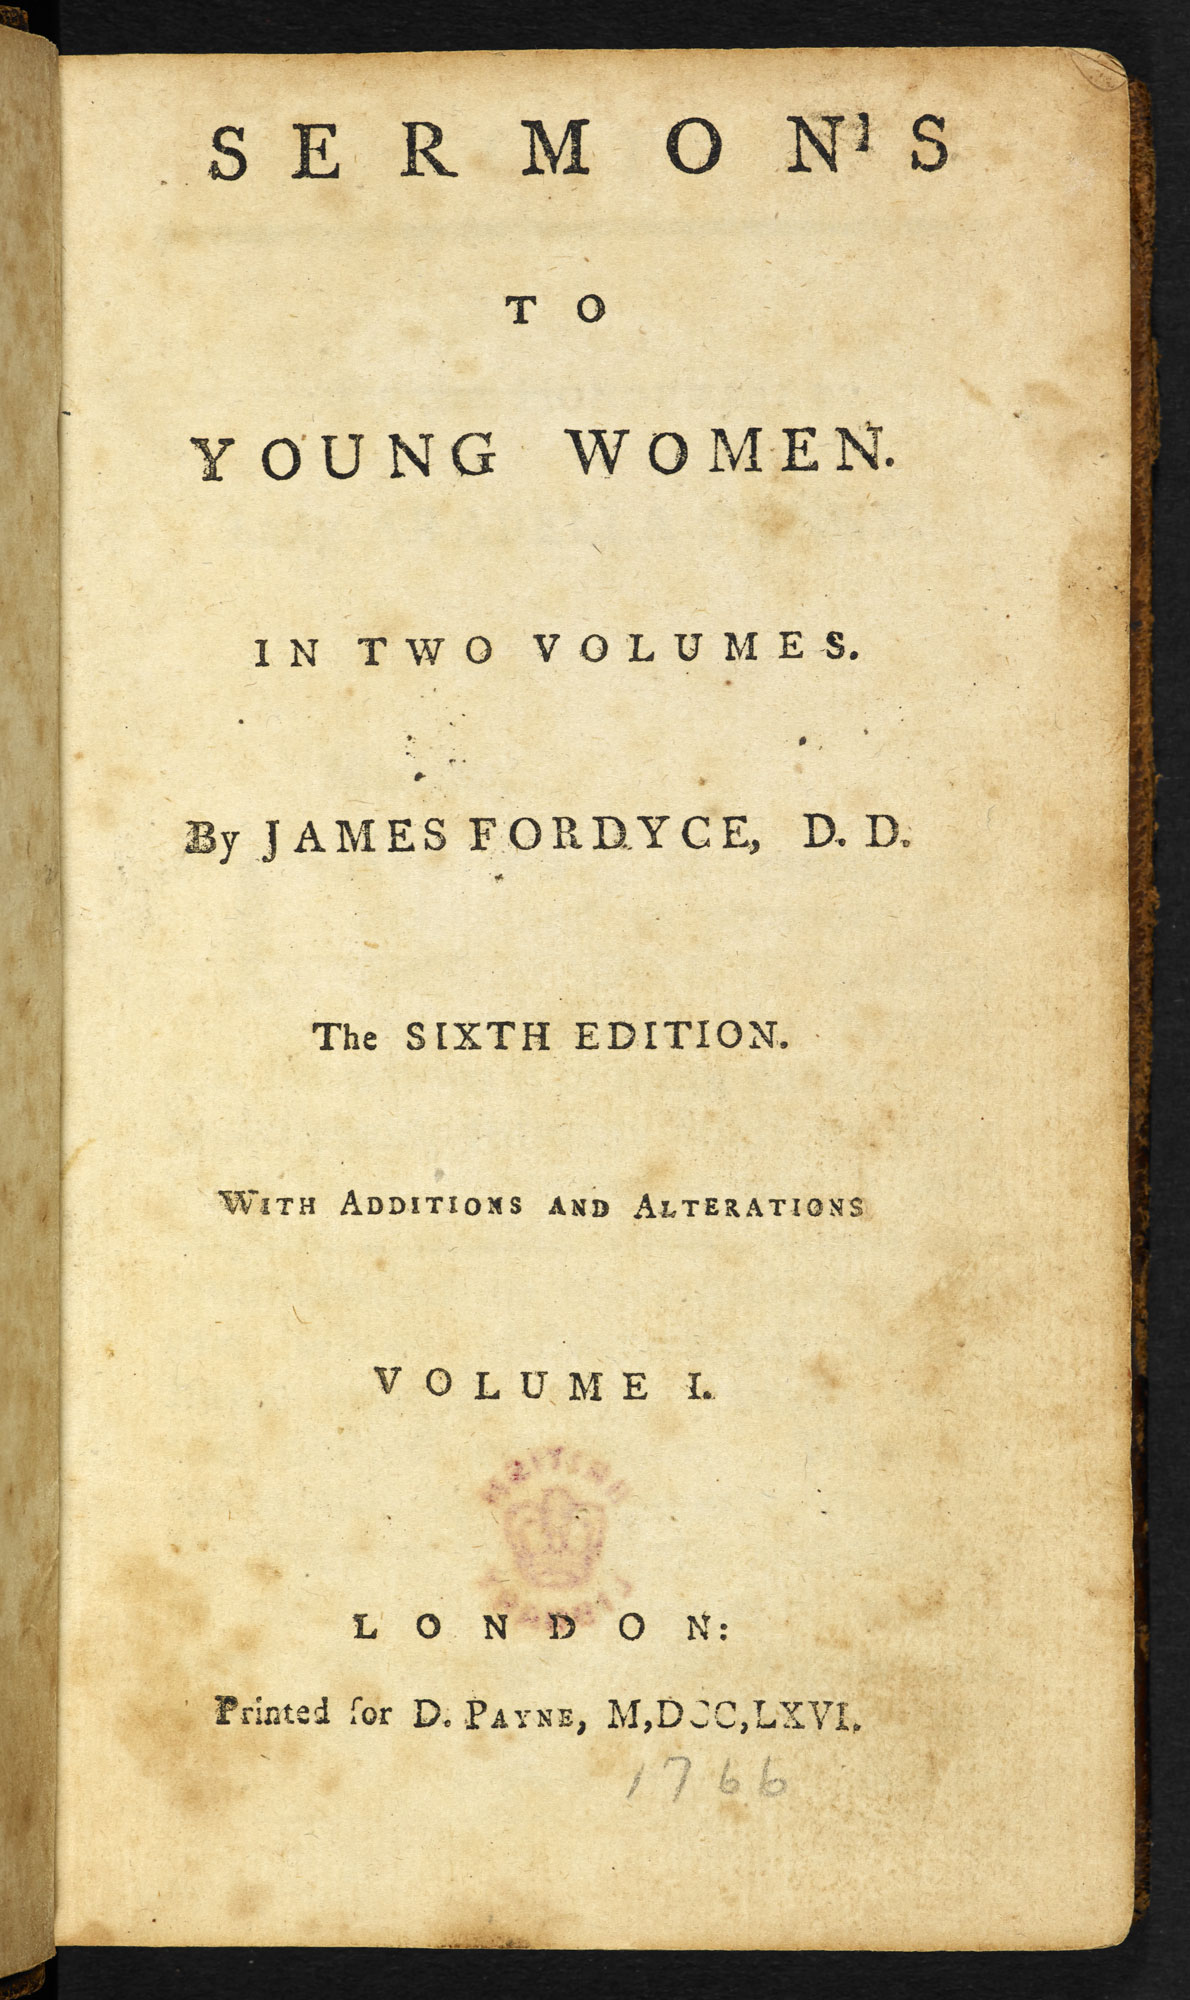 Sermons to Young Women - The British Library